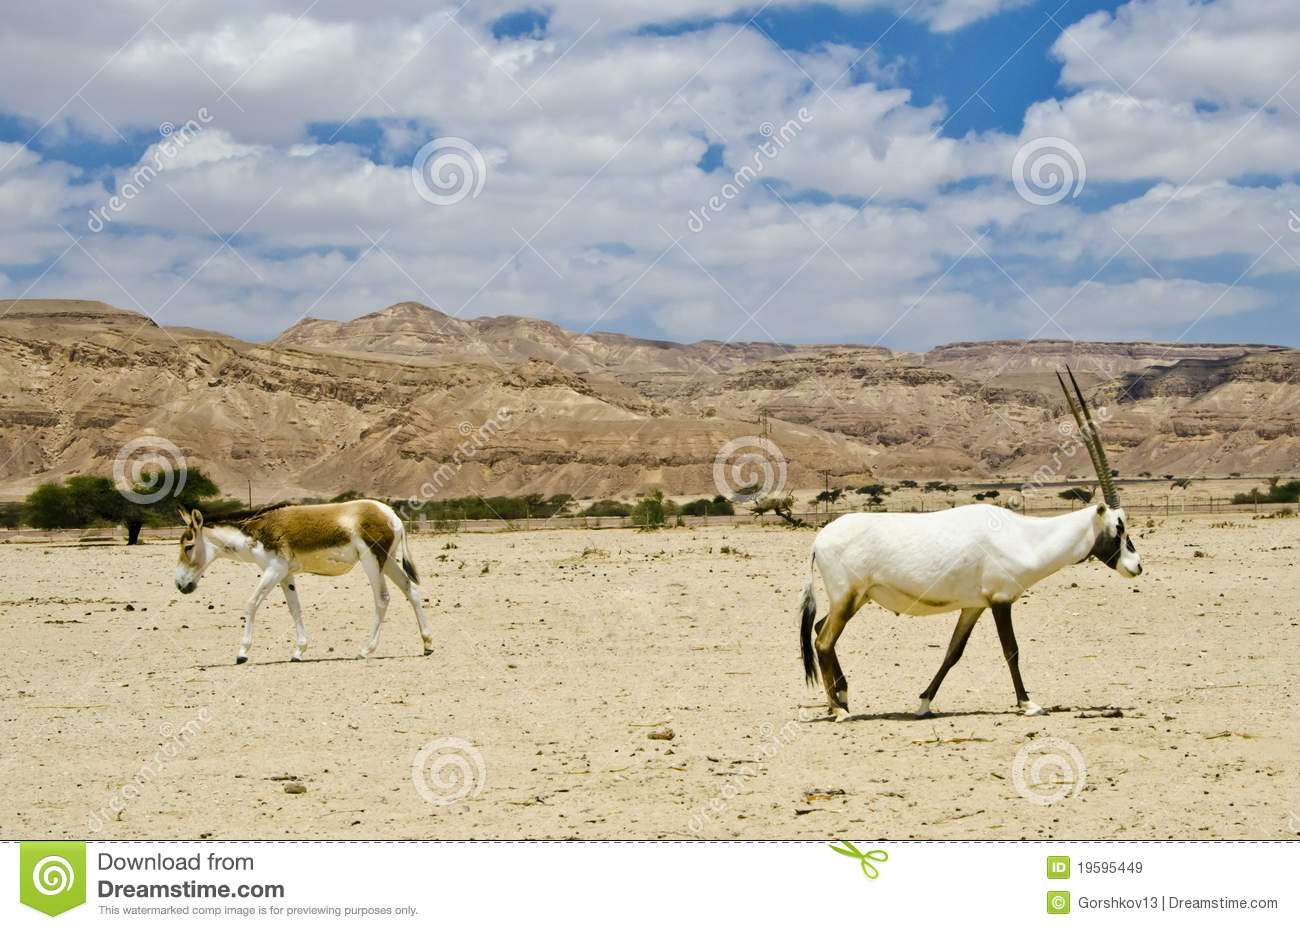 https://thumbs.dreamstime.com/z/onager-oryx-nature-reserve-israel-19595449.jpg